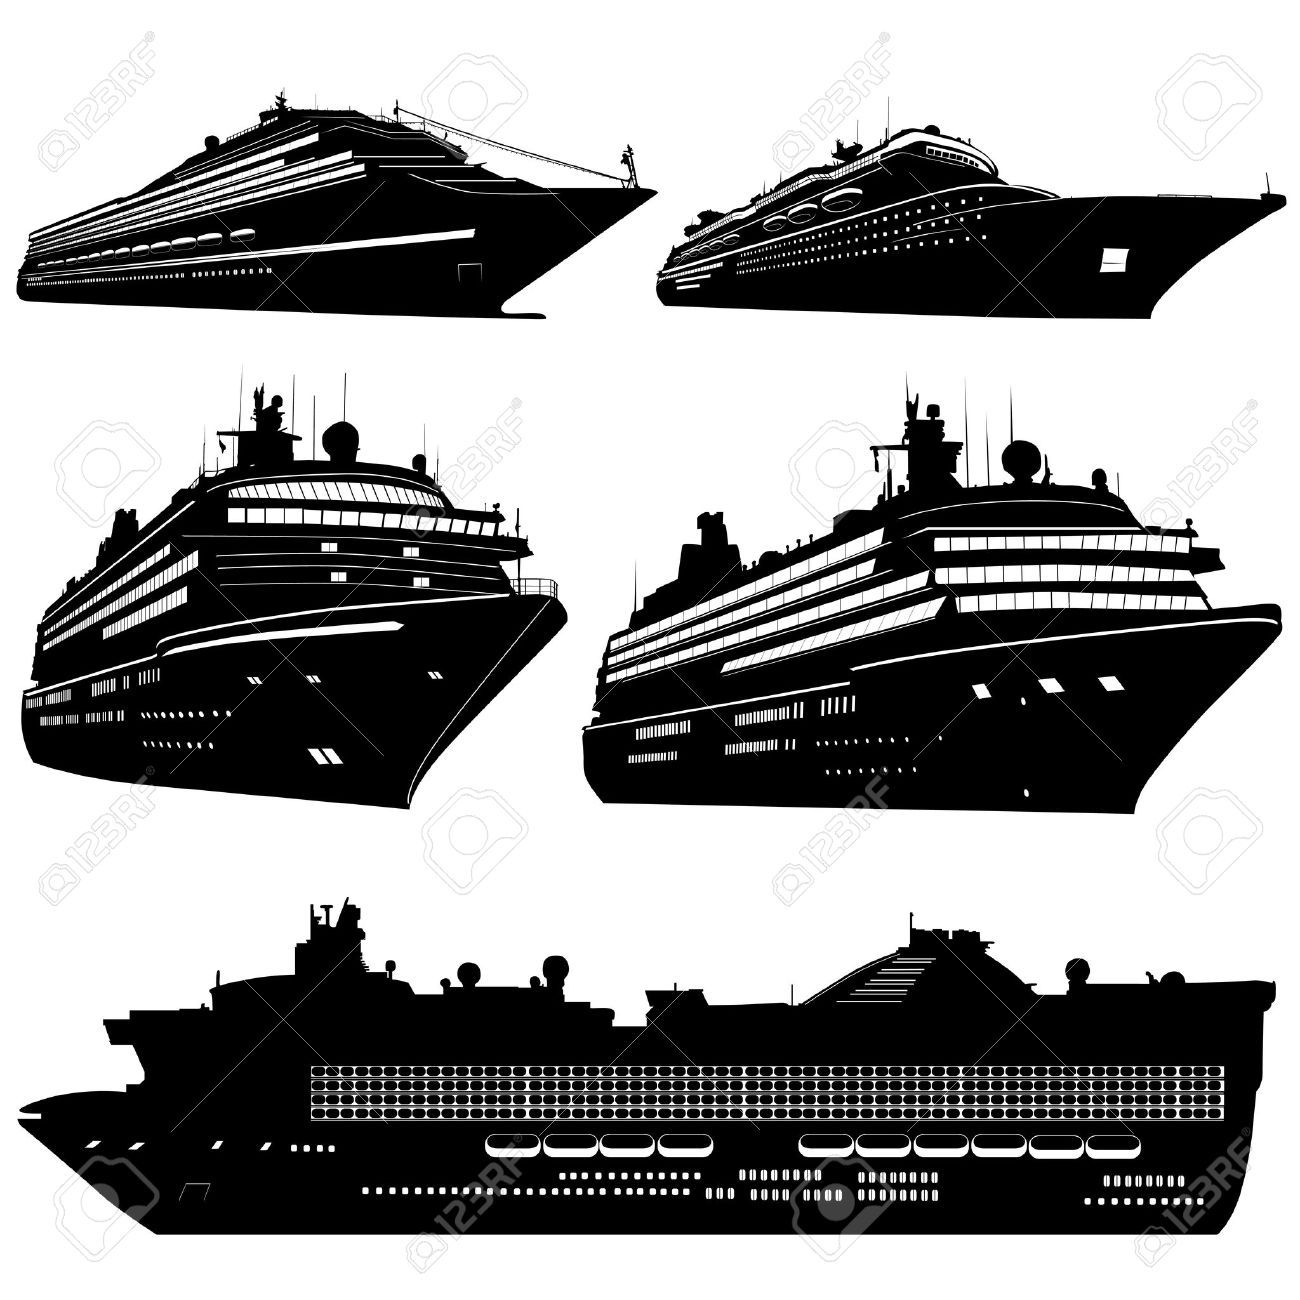 Free Cruise Ship Silhouette Clipart for your creation